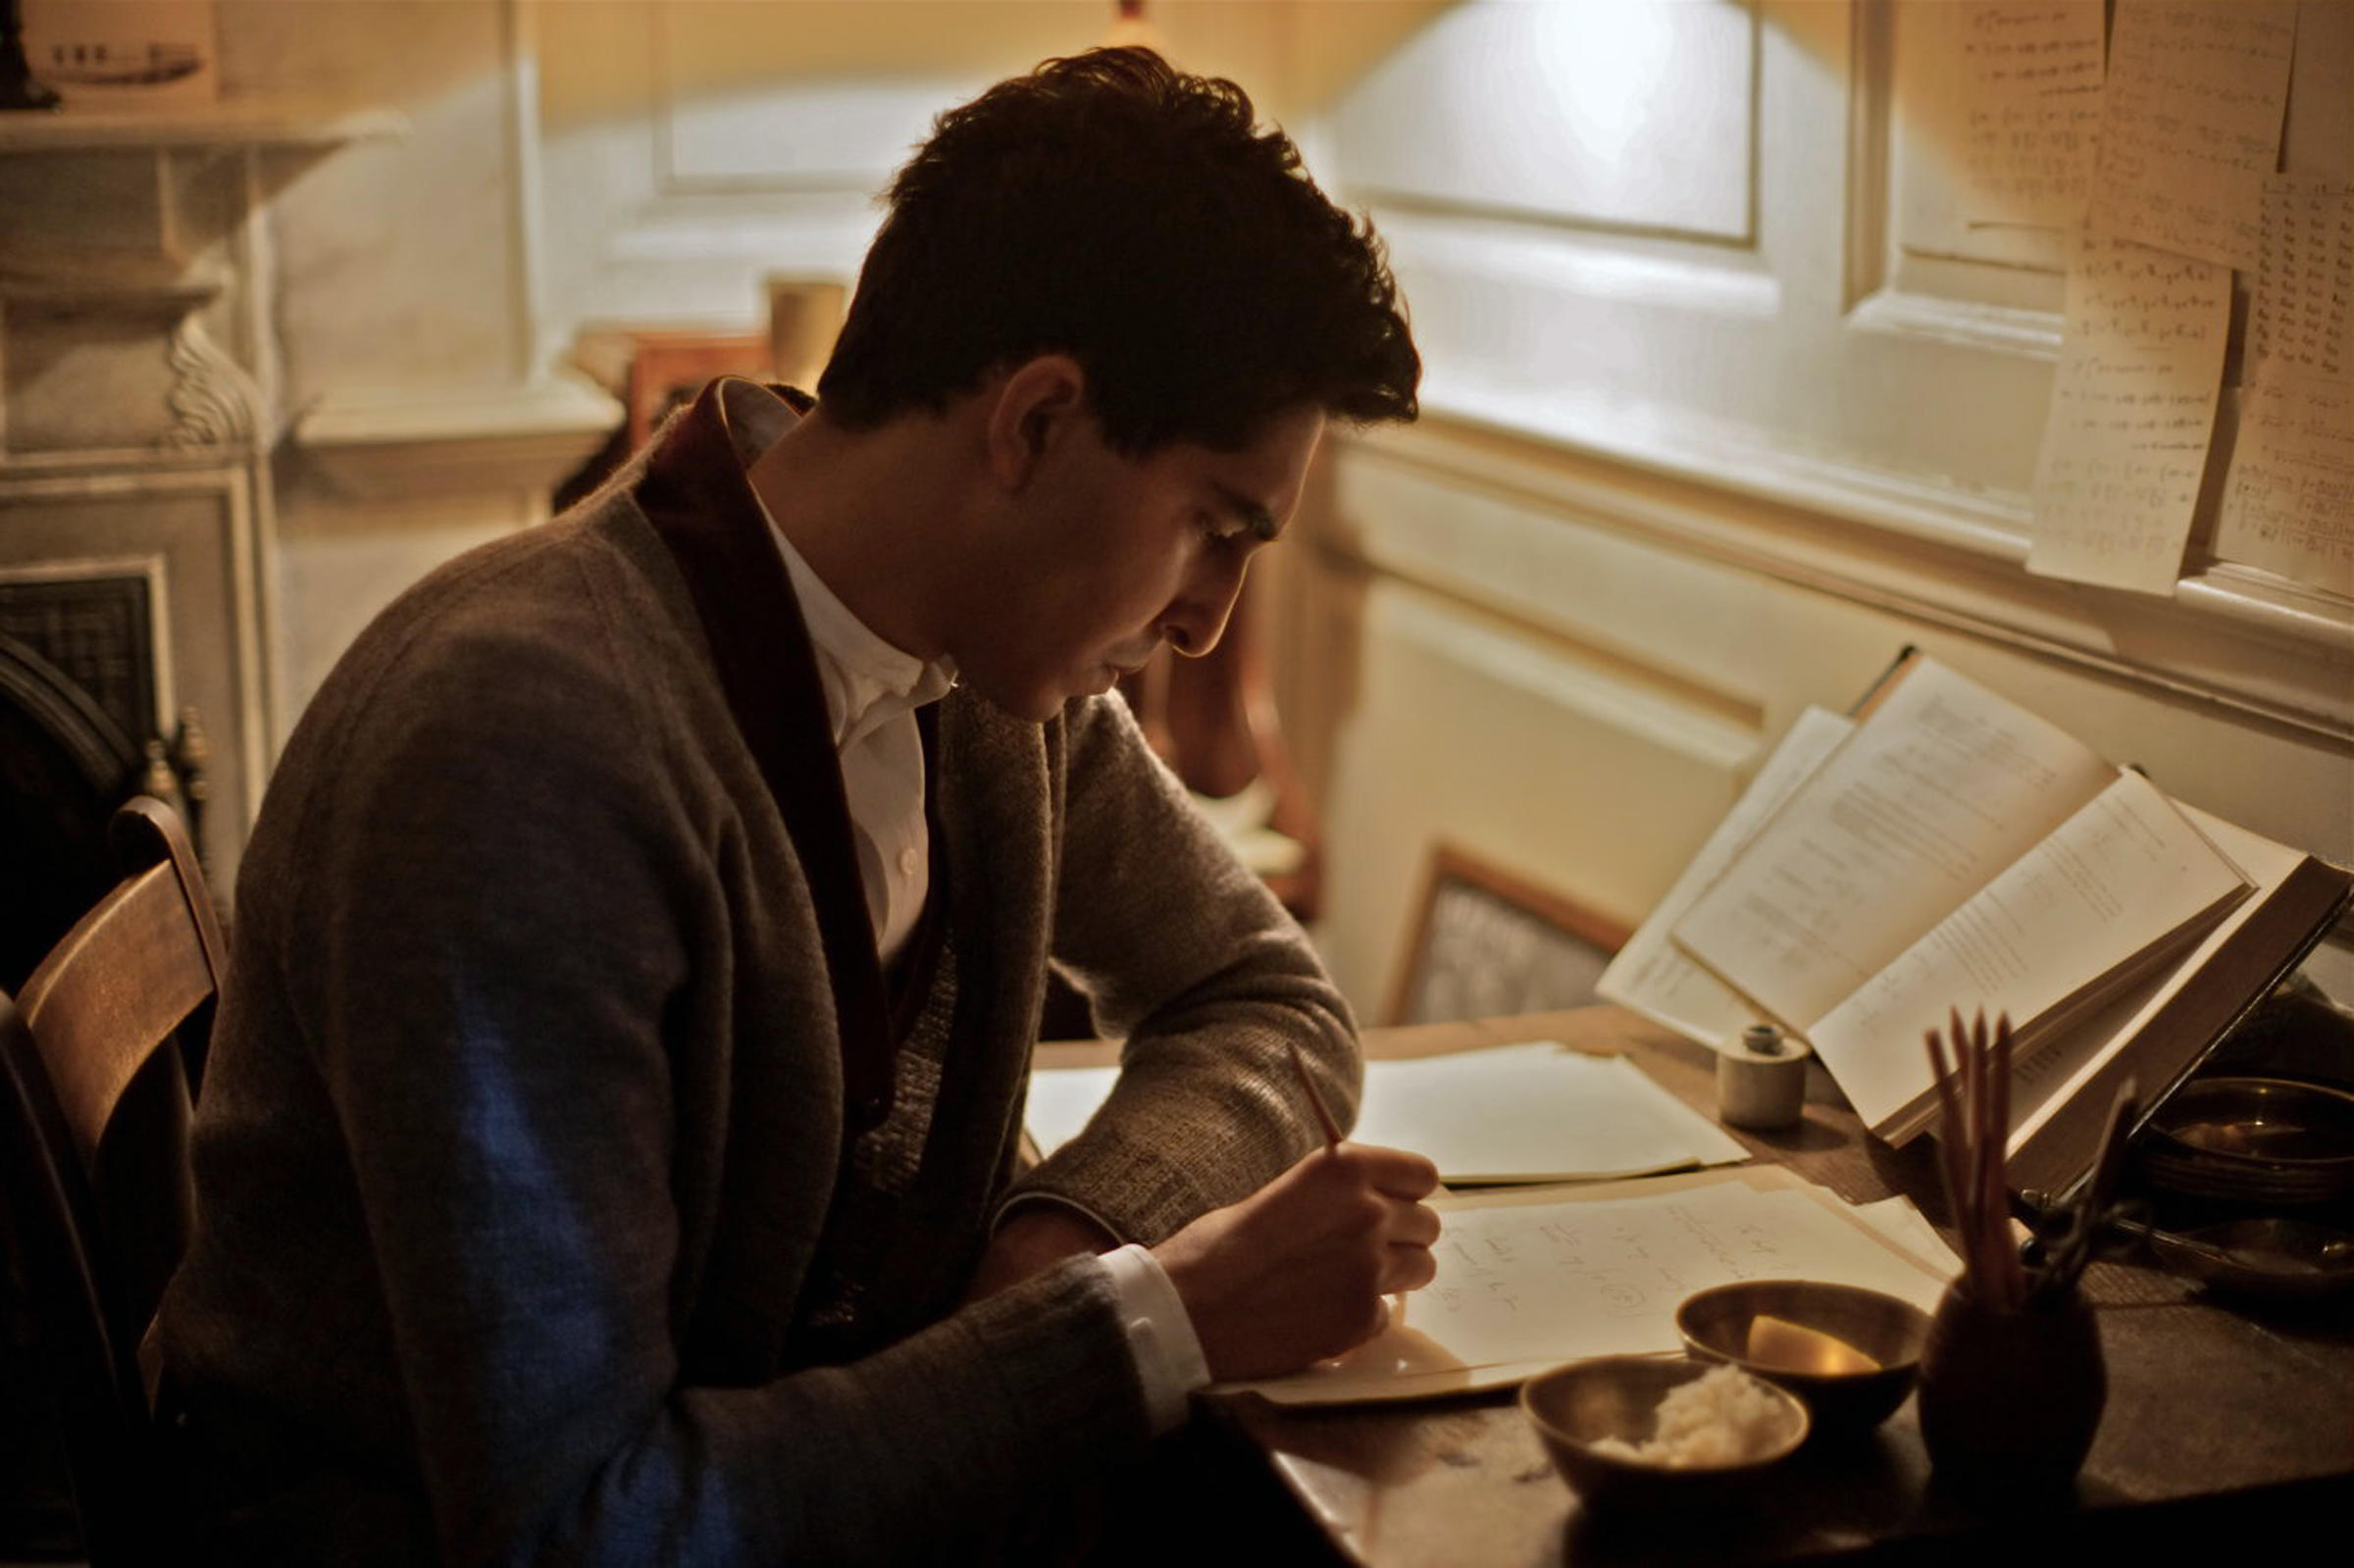 The Man Who Knew Infinity: A Life of the Genius Ramanujan is film of the biography book of the Indian mathematician Srinivasa Ra